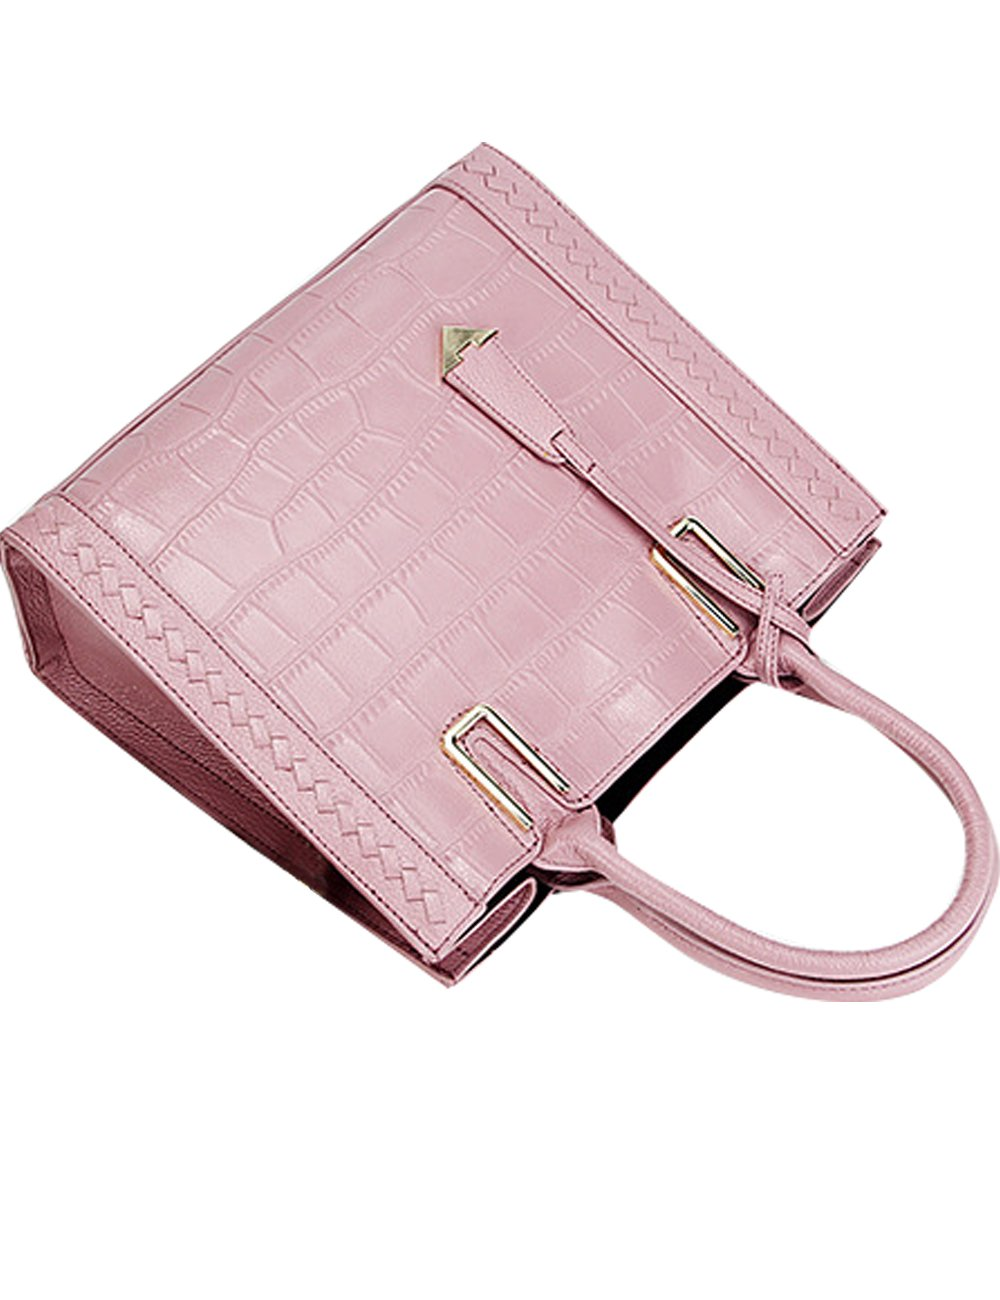 Menschwear Womens Genuine Leather Top Handle Satchel Bag Pink by Menschwear (Image #5)